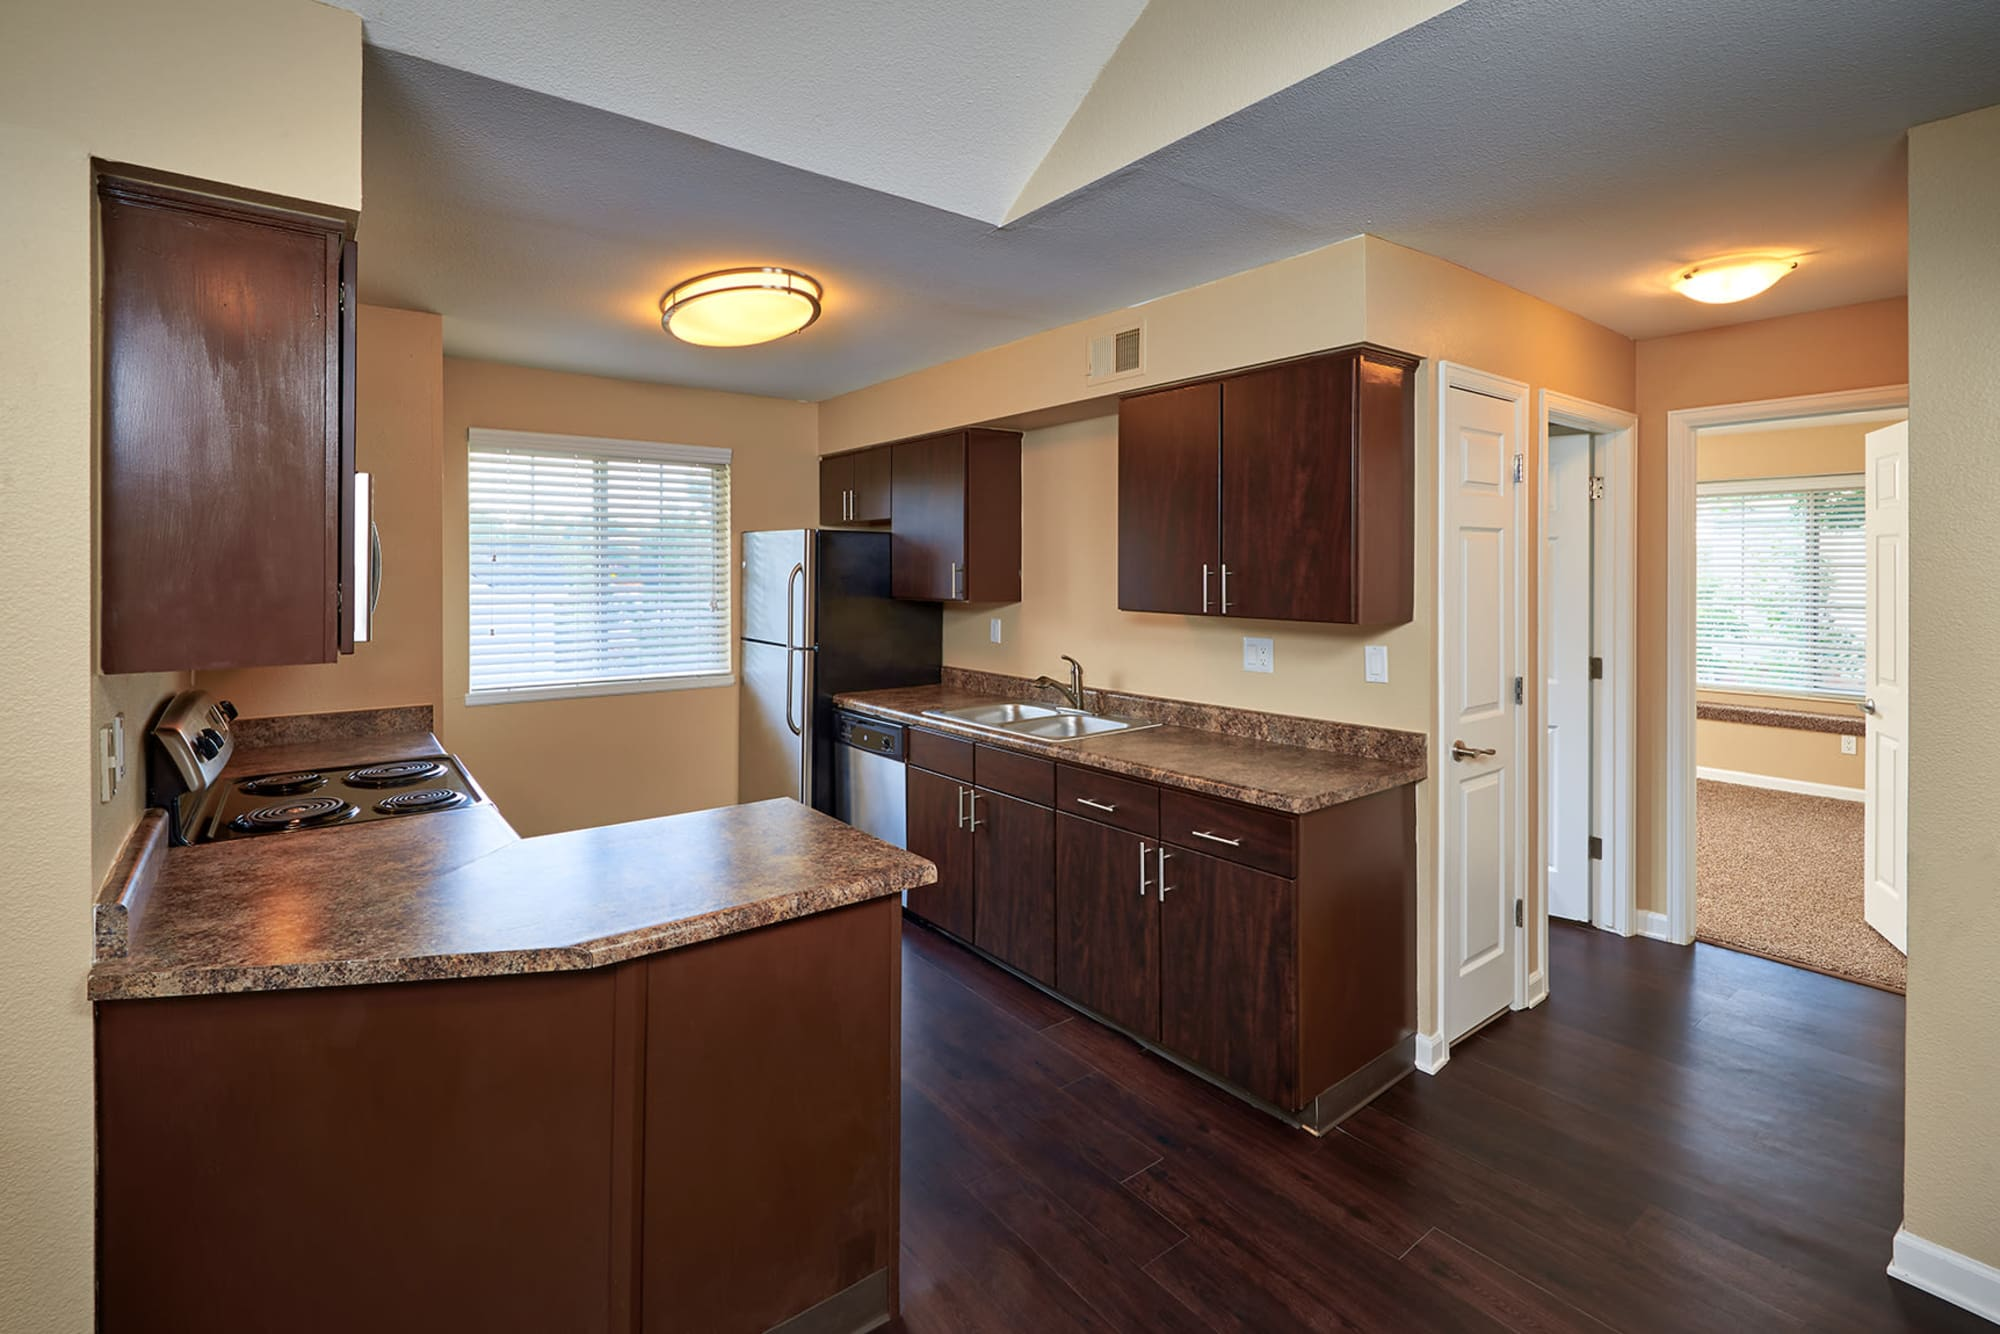 Renovated kitchens with brown cabinets at Villas at Homestead Apartments